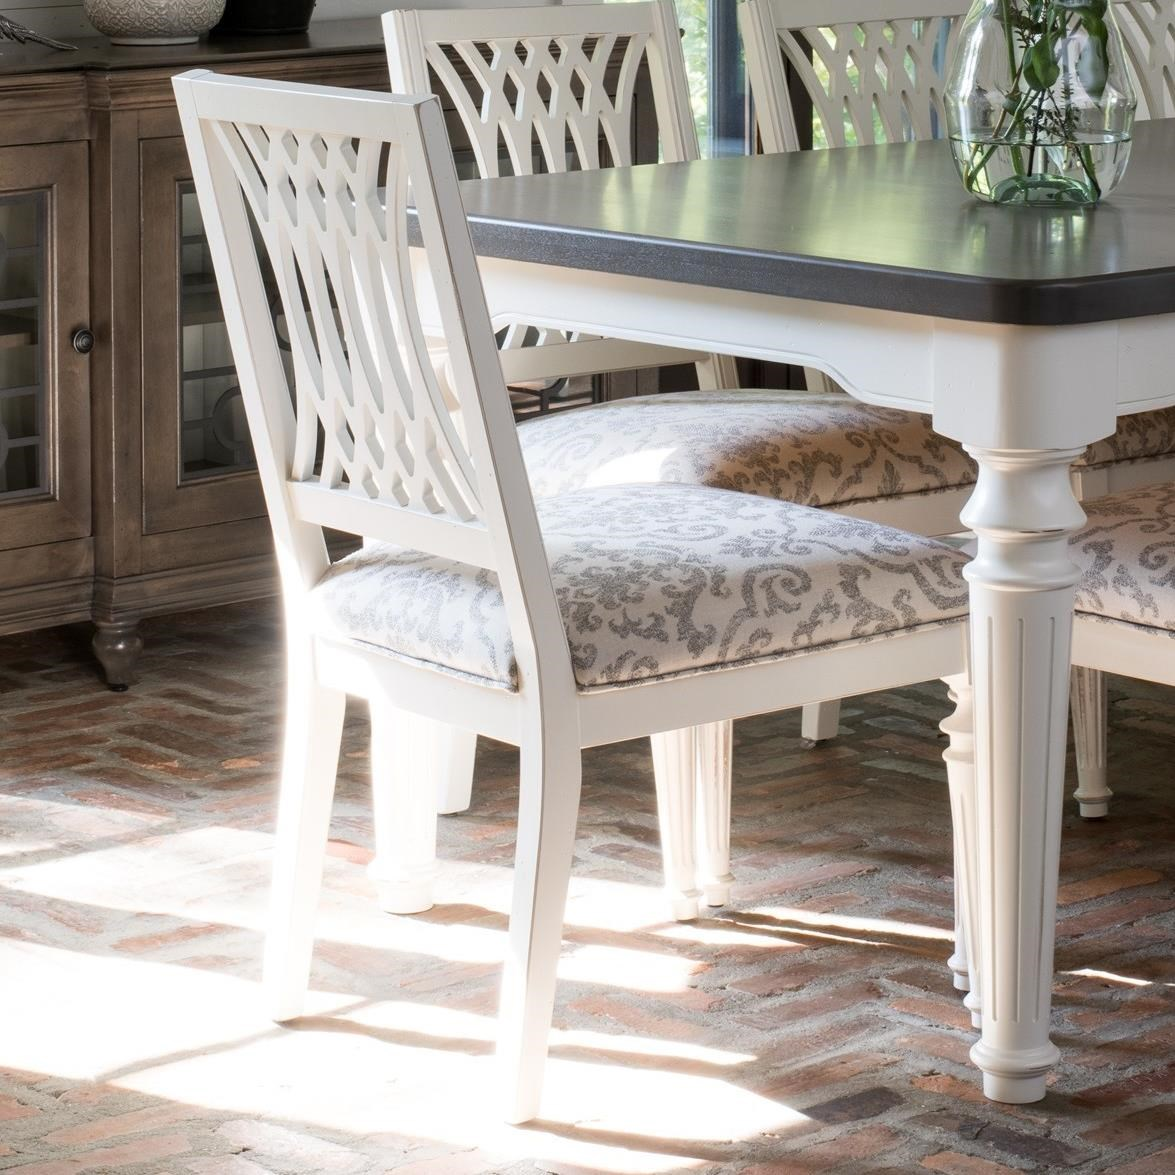 Farmhouse Chic Customizable Dining Side Chair by Canadel at Dinette Depot